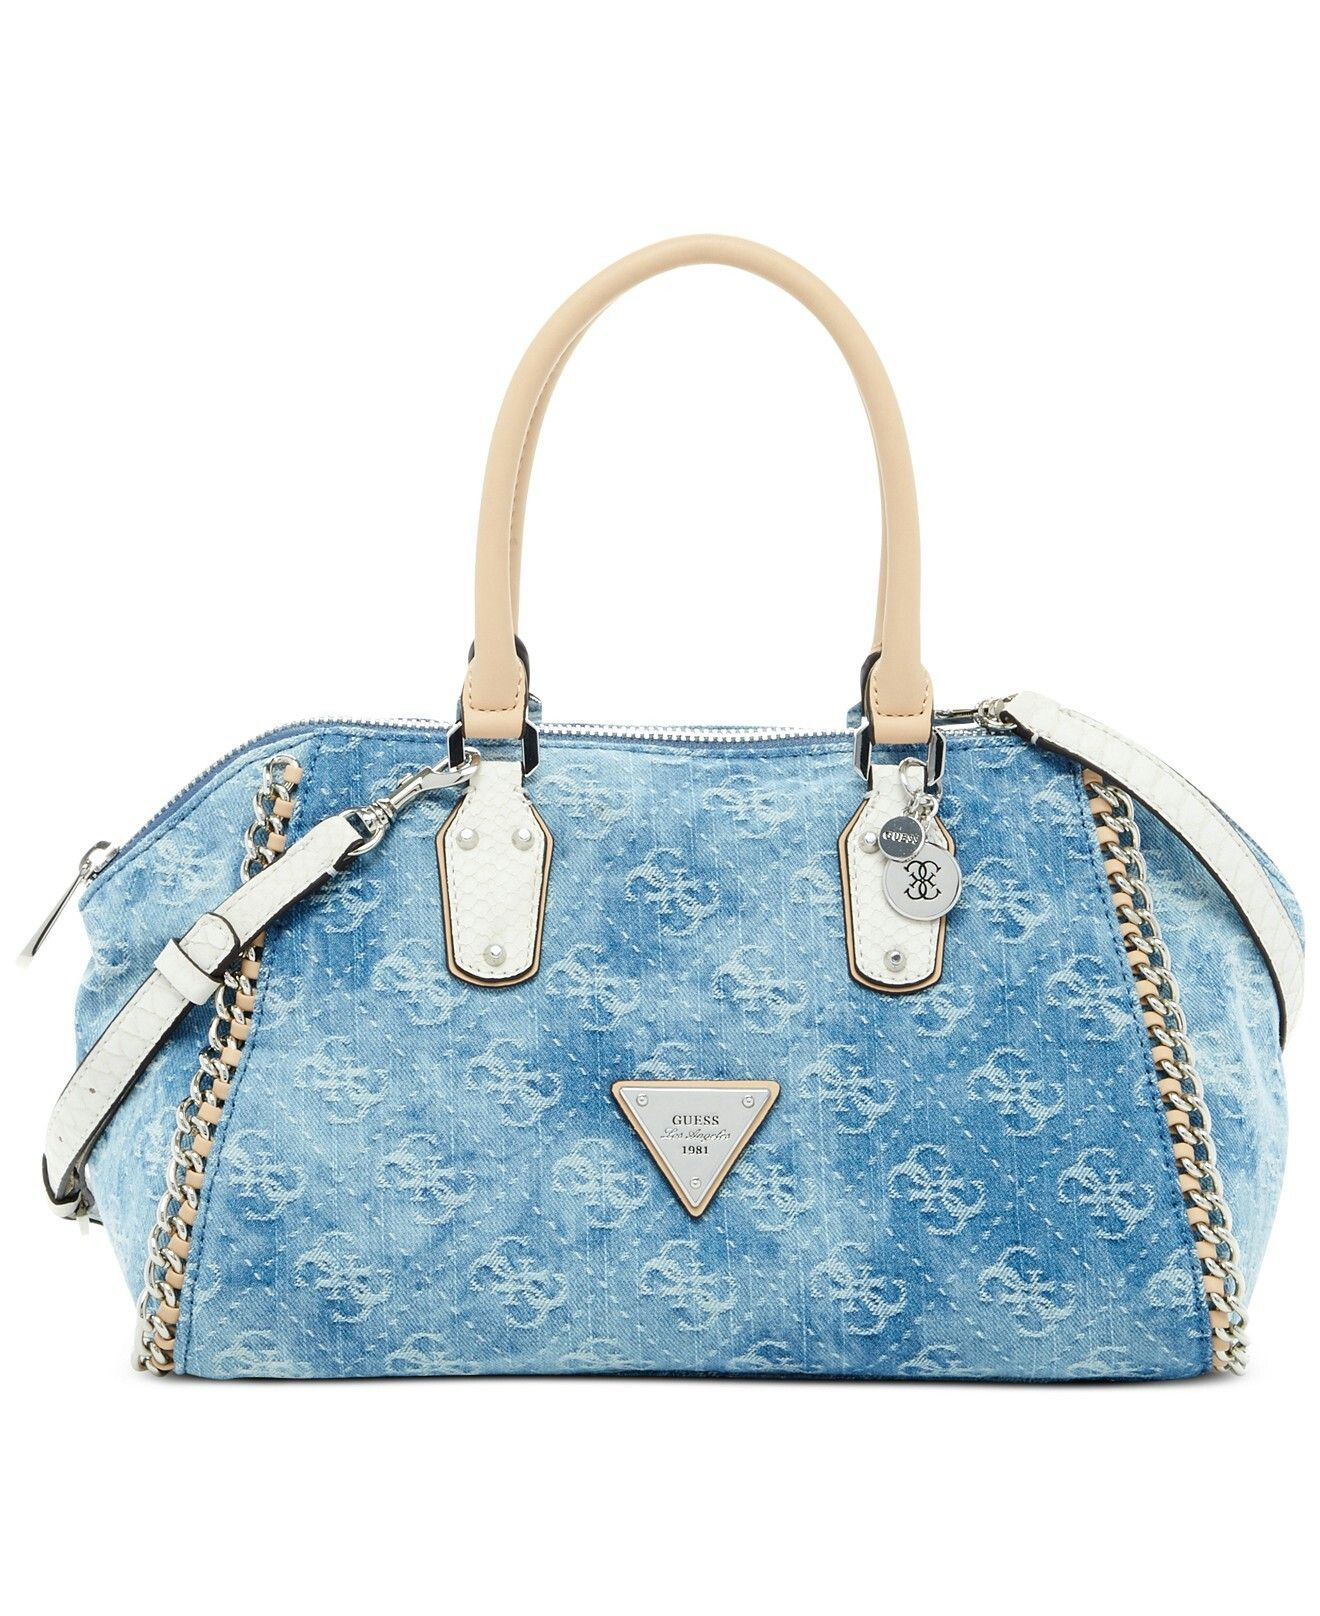 GUESS Amelle Denim Signature Uptown Medium Satchel - All Handbags - Handbags    Accessories - Macy s 53810cf3de2cf